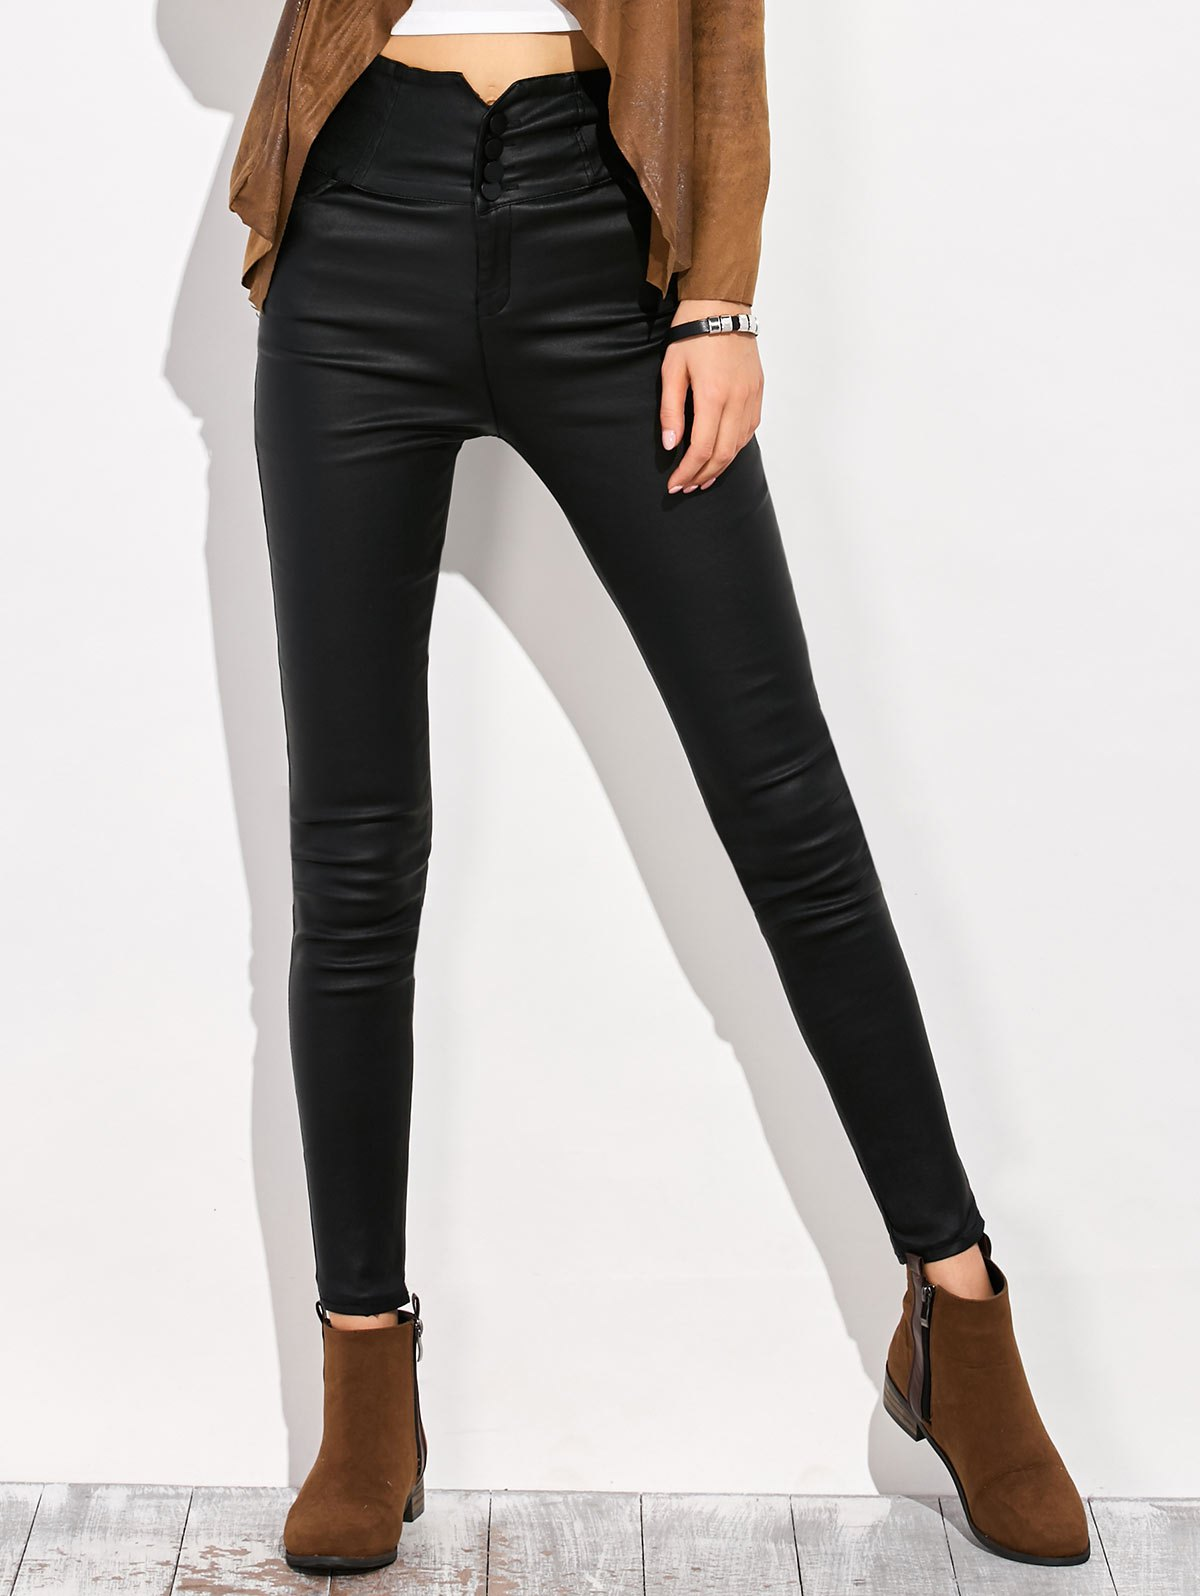 Cross Criss Skinny Pencil Pants